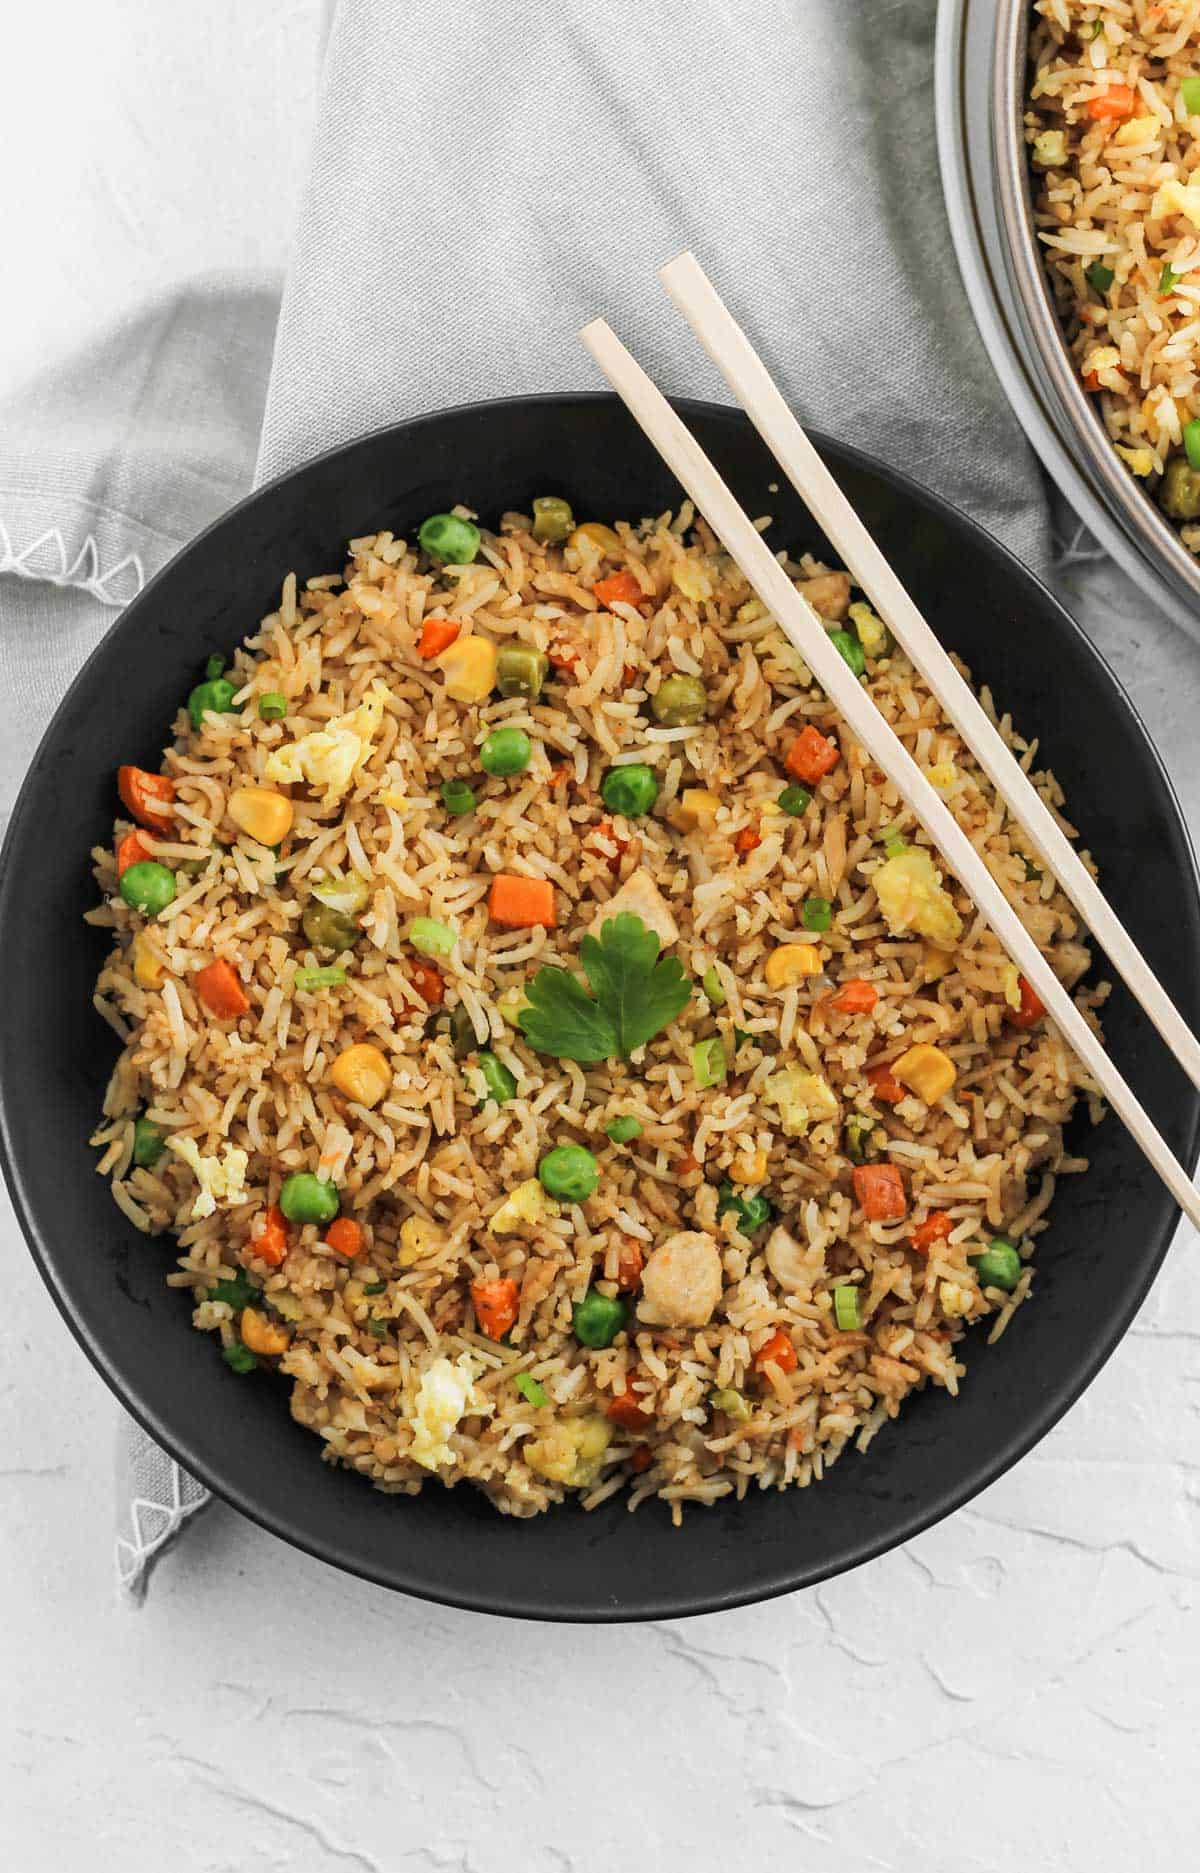 Chicken fried rice in a black bowl with chopsticks across the top.